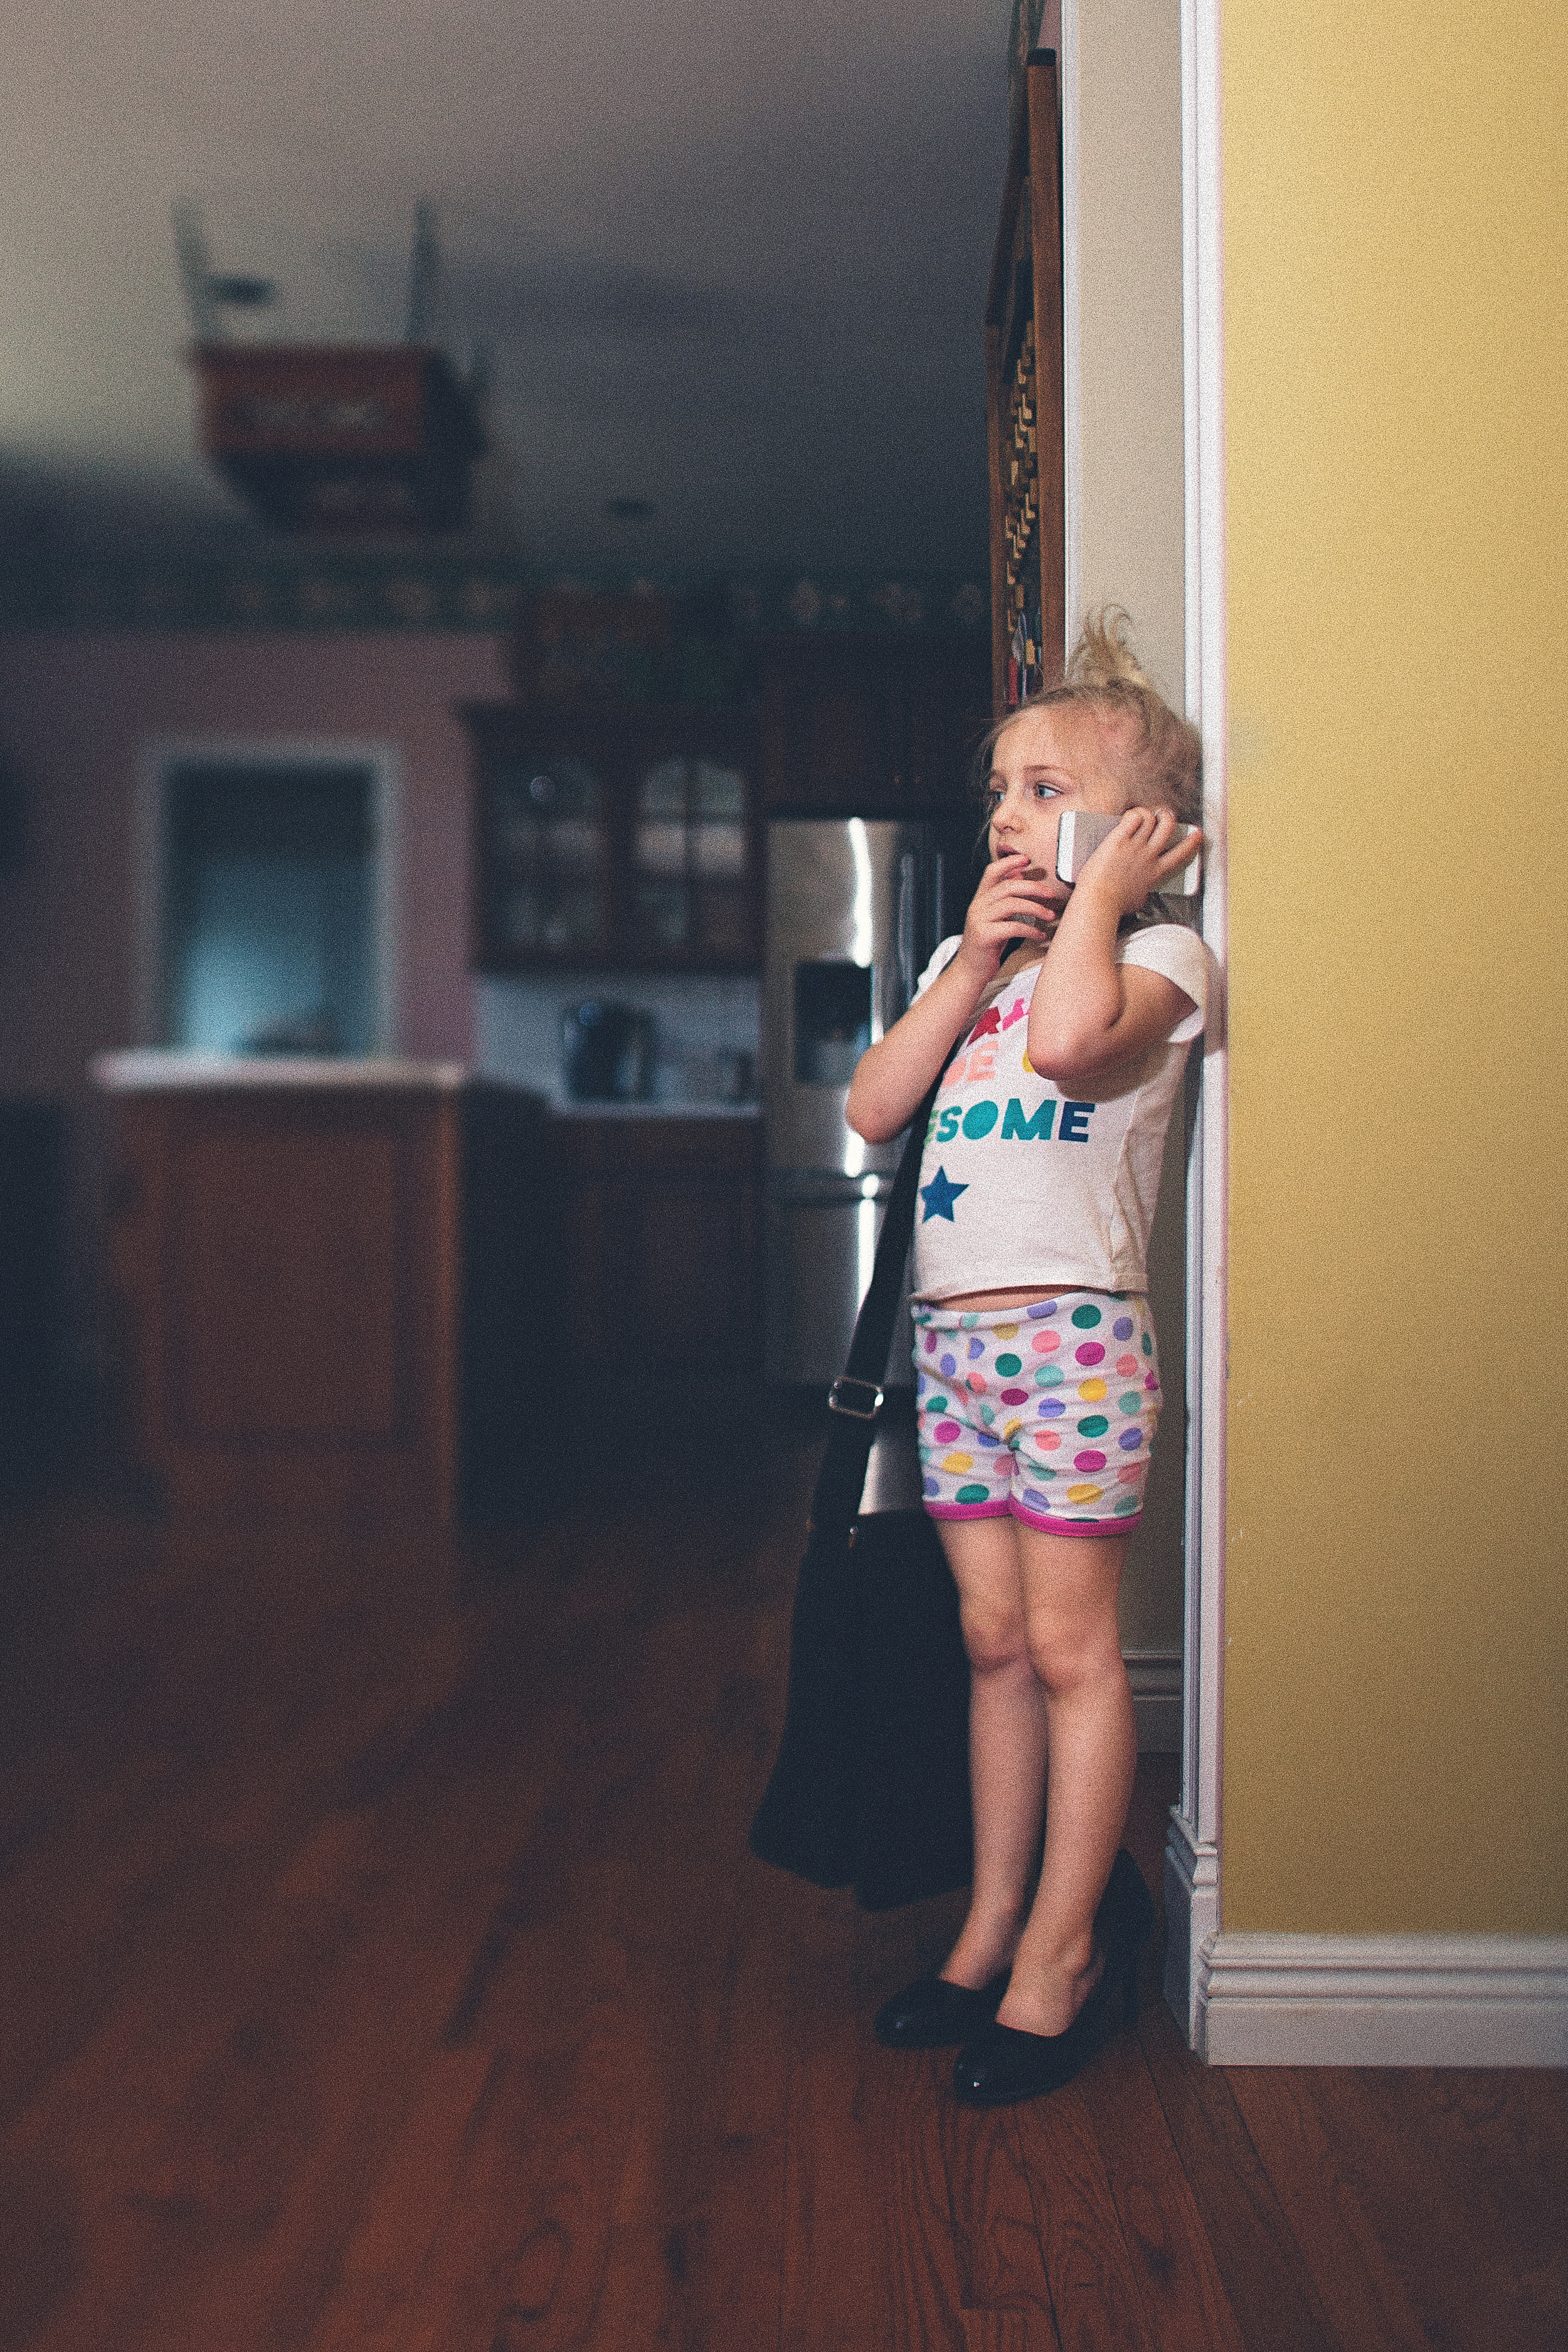 Hello-olivia-photography-Long-island-Children-family-photographer-kitchen-girl-mommys-clothes-high-heels.jpg